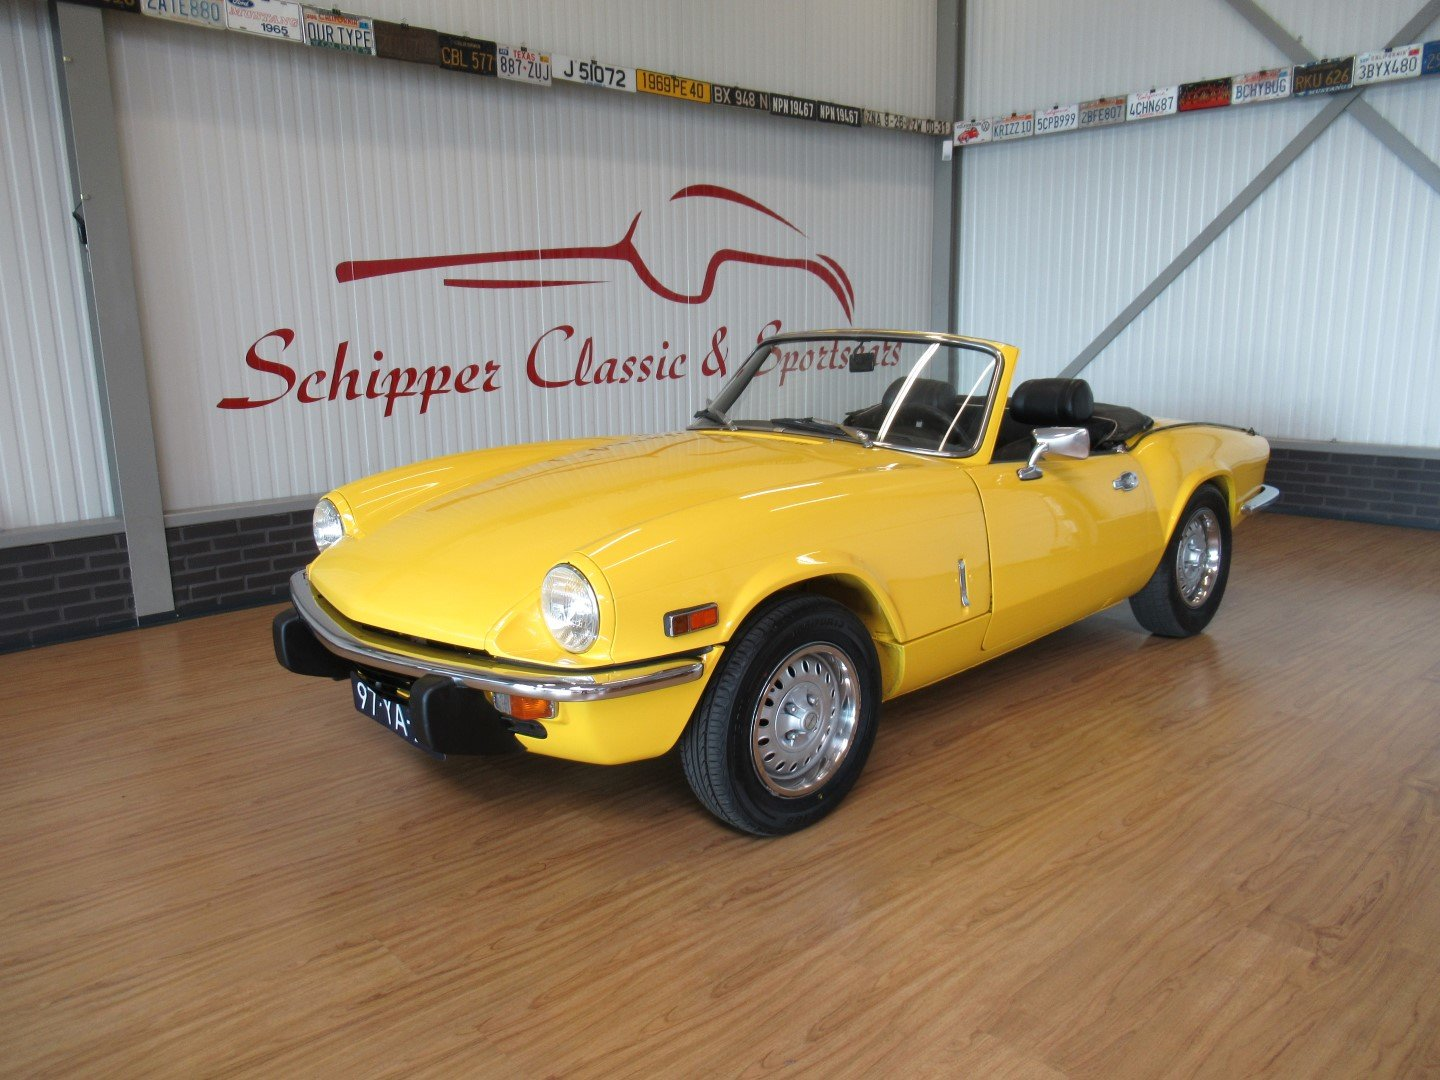 1973 Triumph Spitfire MK IV Roadster For Sale (picture 1 of 6)